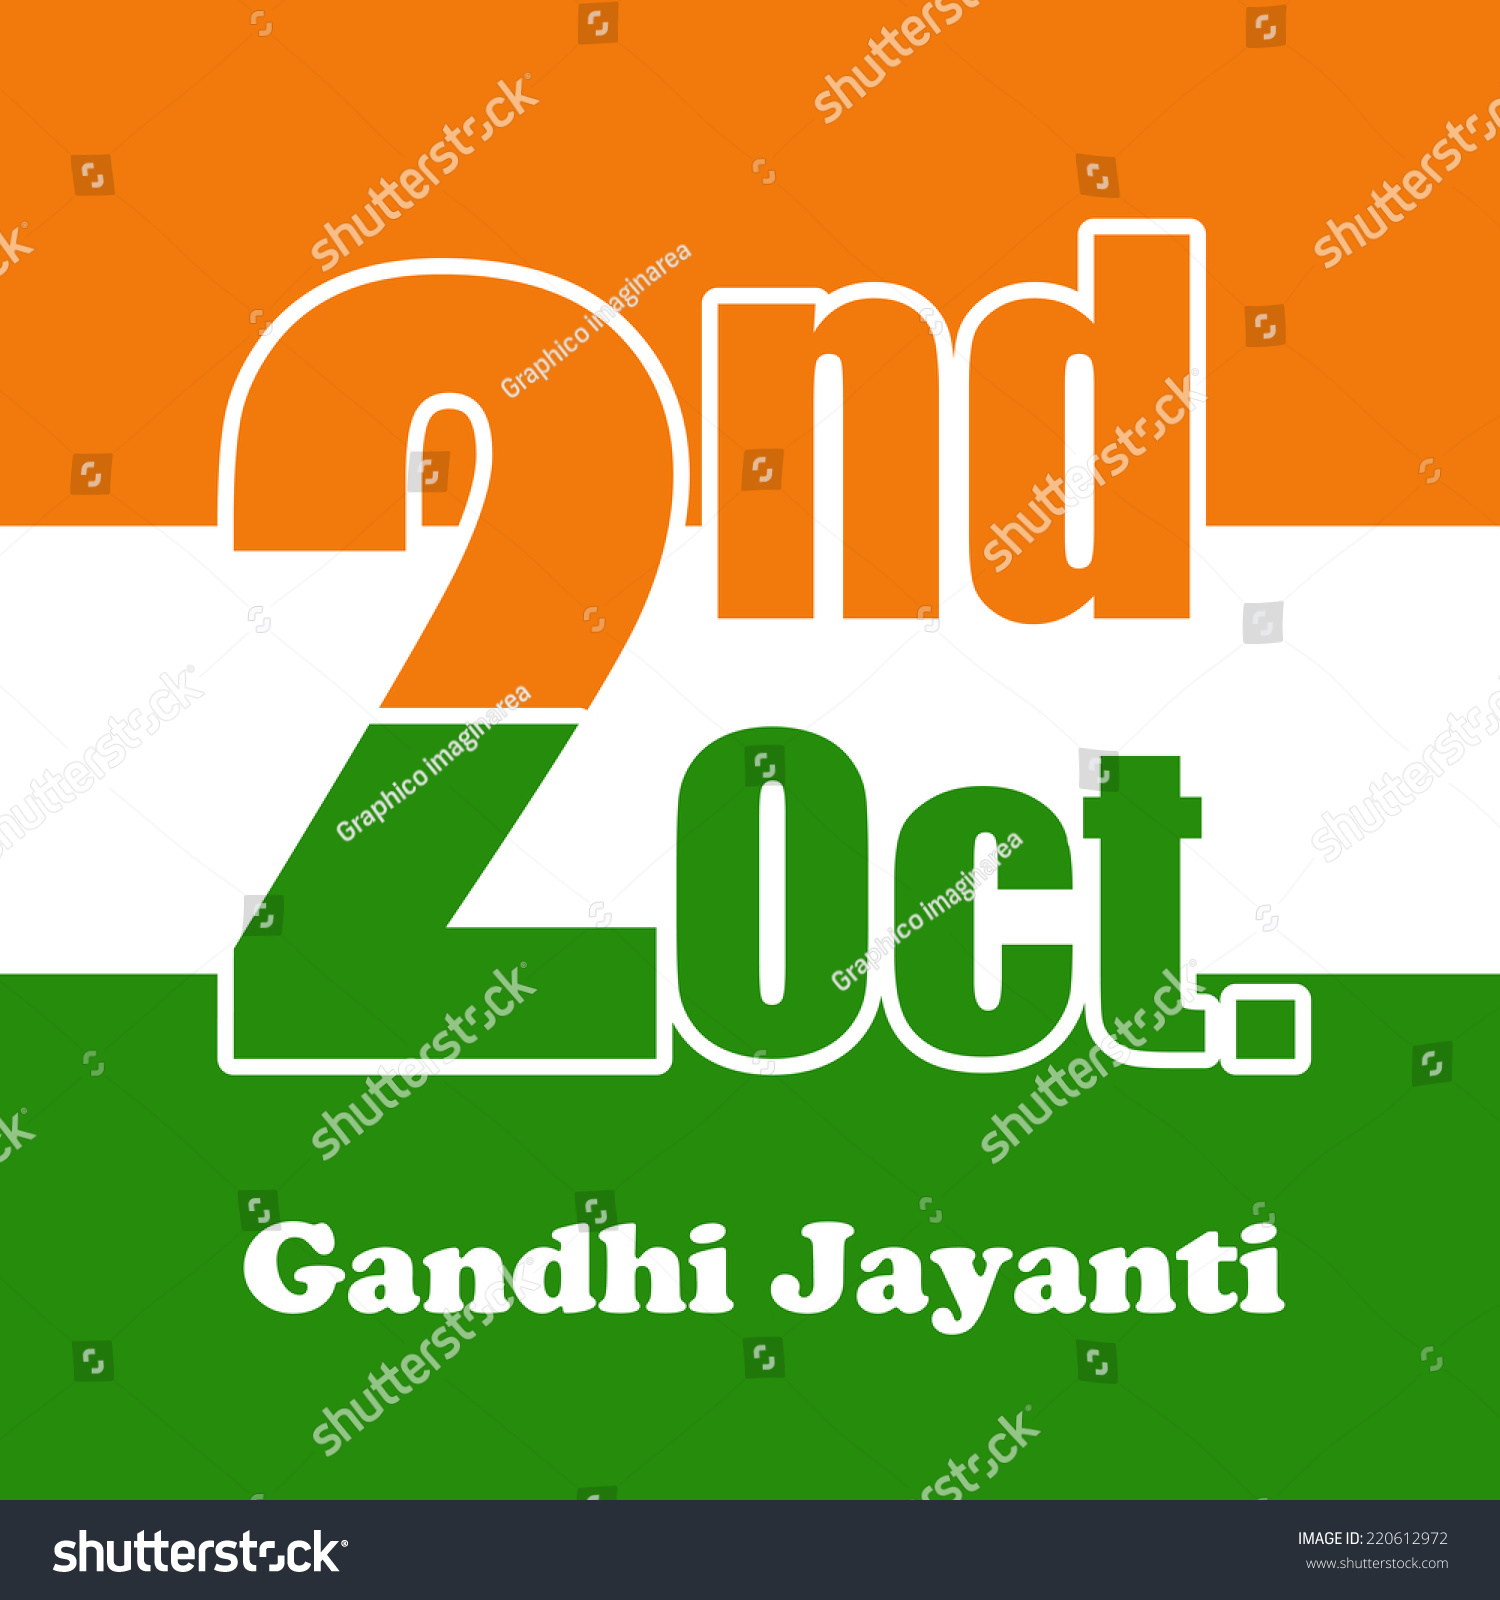 gandhi birthday photo ; stock-vector-illustration-for-gandhi-jayanti-celebrated-by-indians-in-the-memory-glory-and-birthday-of-mohandas-220612972